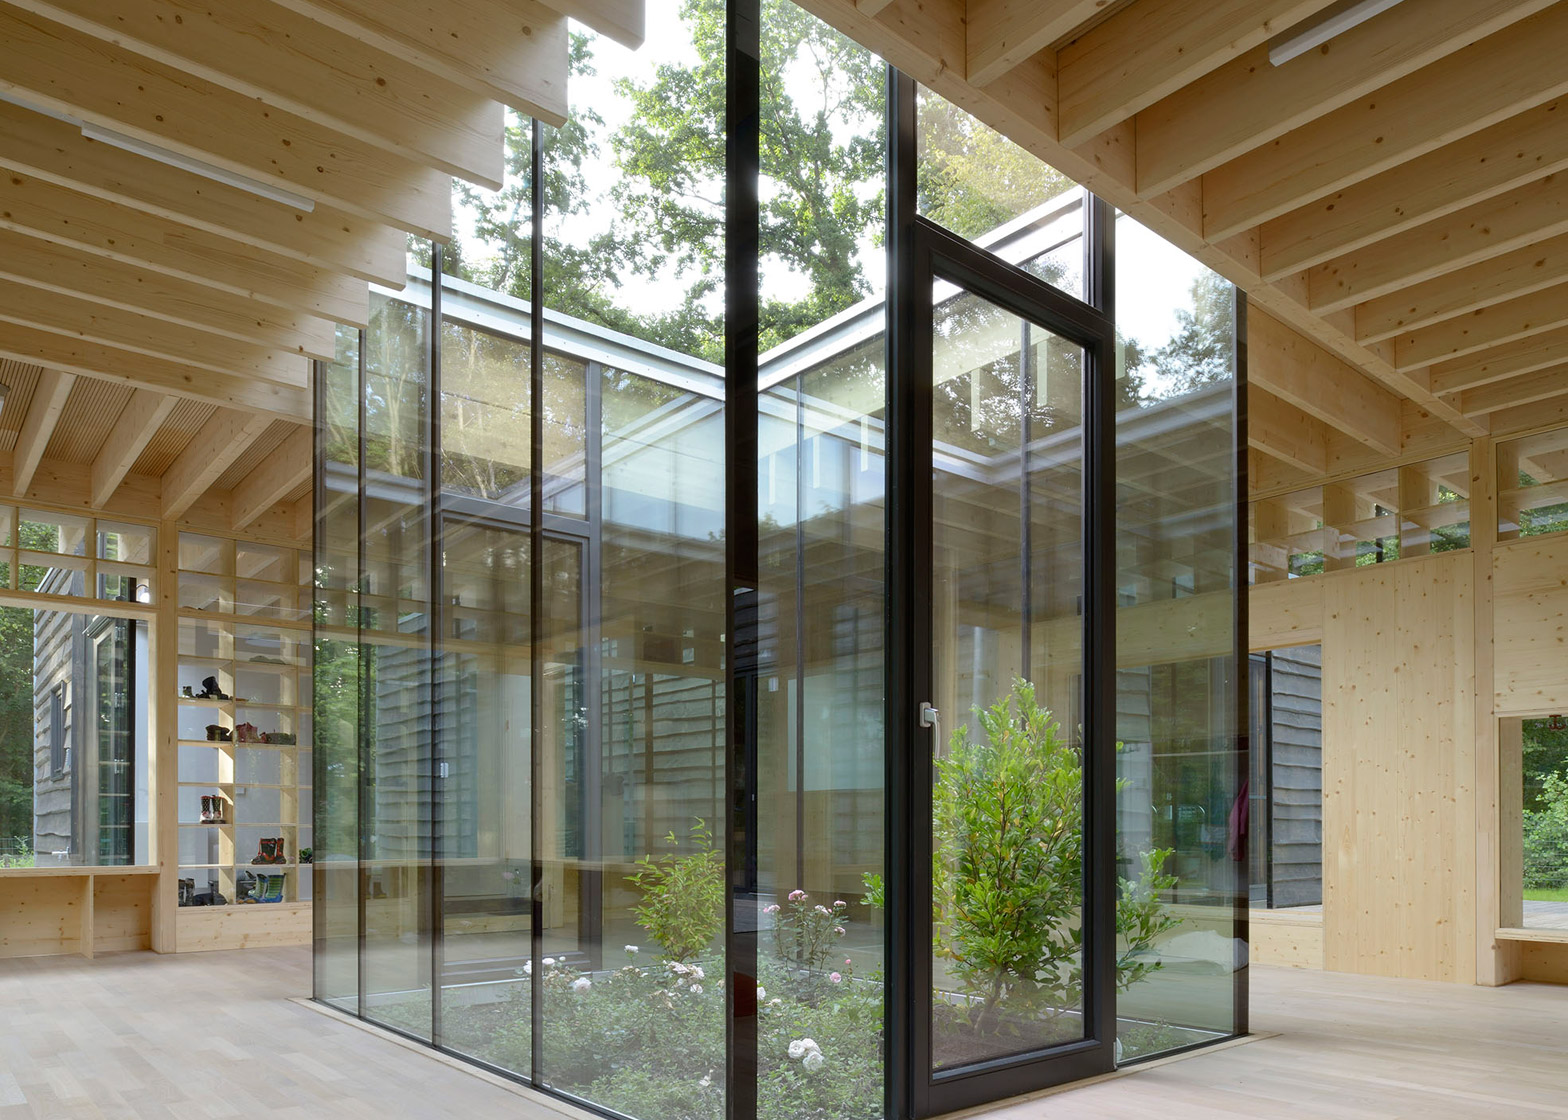 Interior Designer Hamburg Kraus Schoenberg Architekten Nursery Opens Up To Forested Site